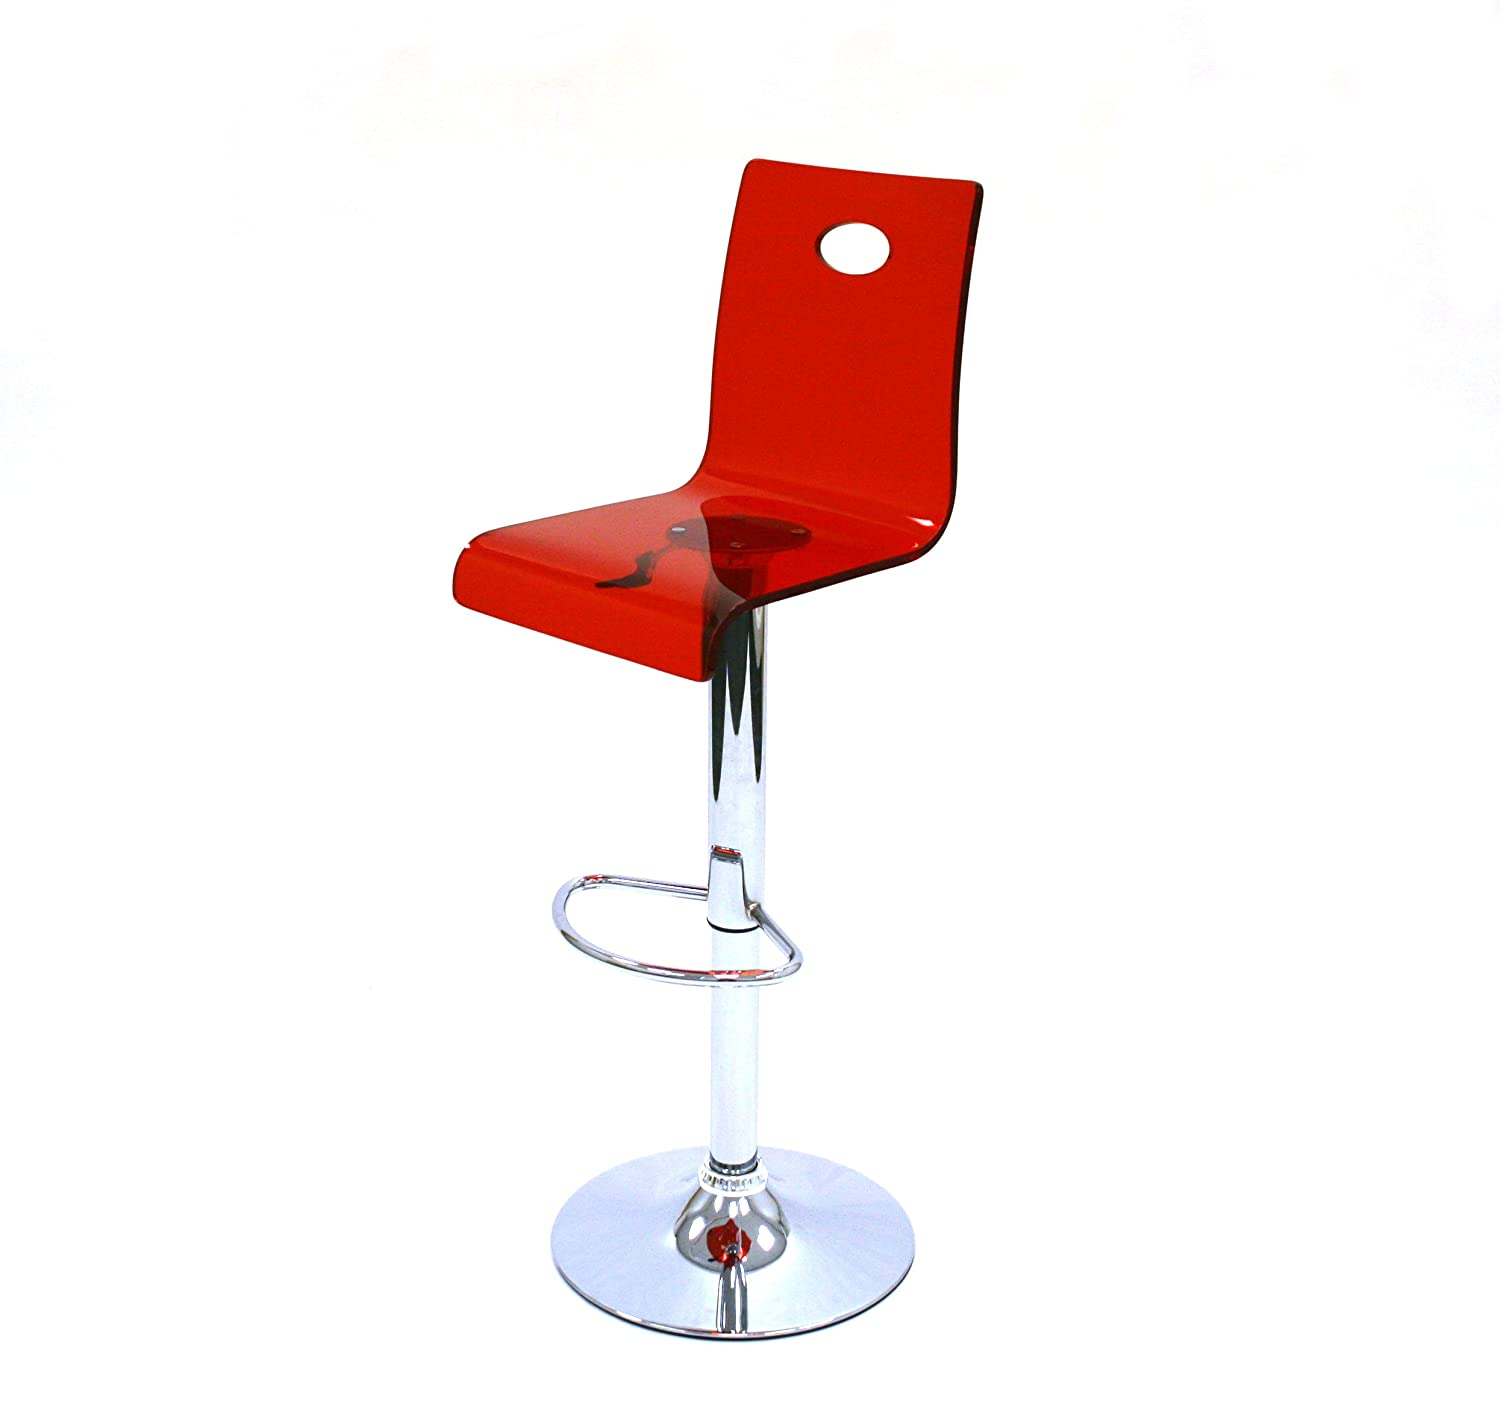 Acrylic Barstool Red Acrylic Gas Lift Bar Stools Kitchen Stools High Stools